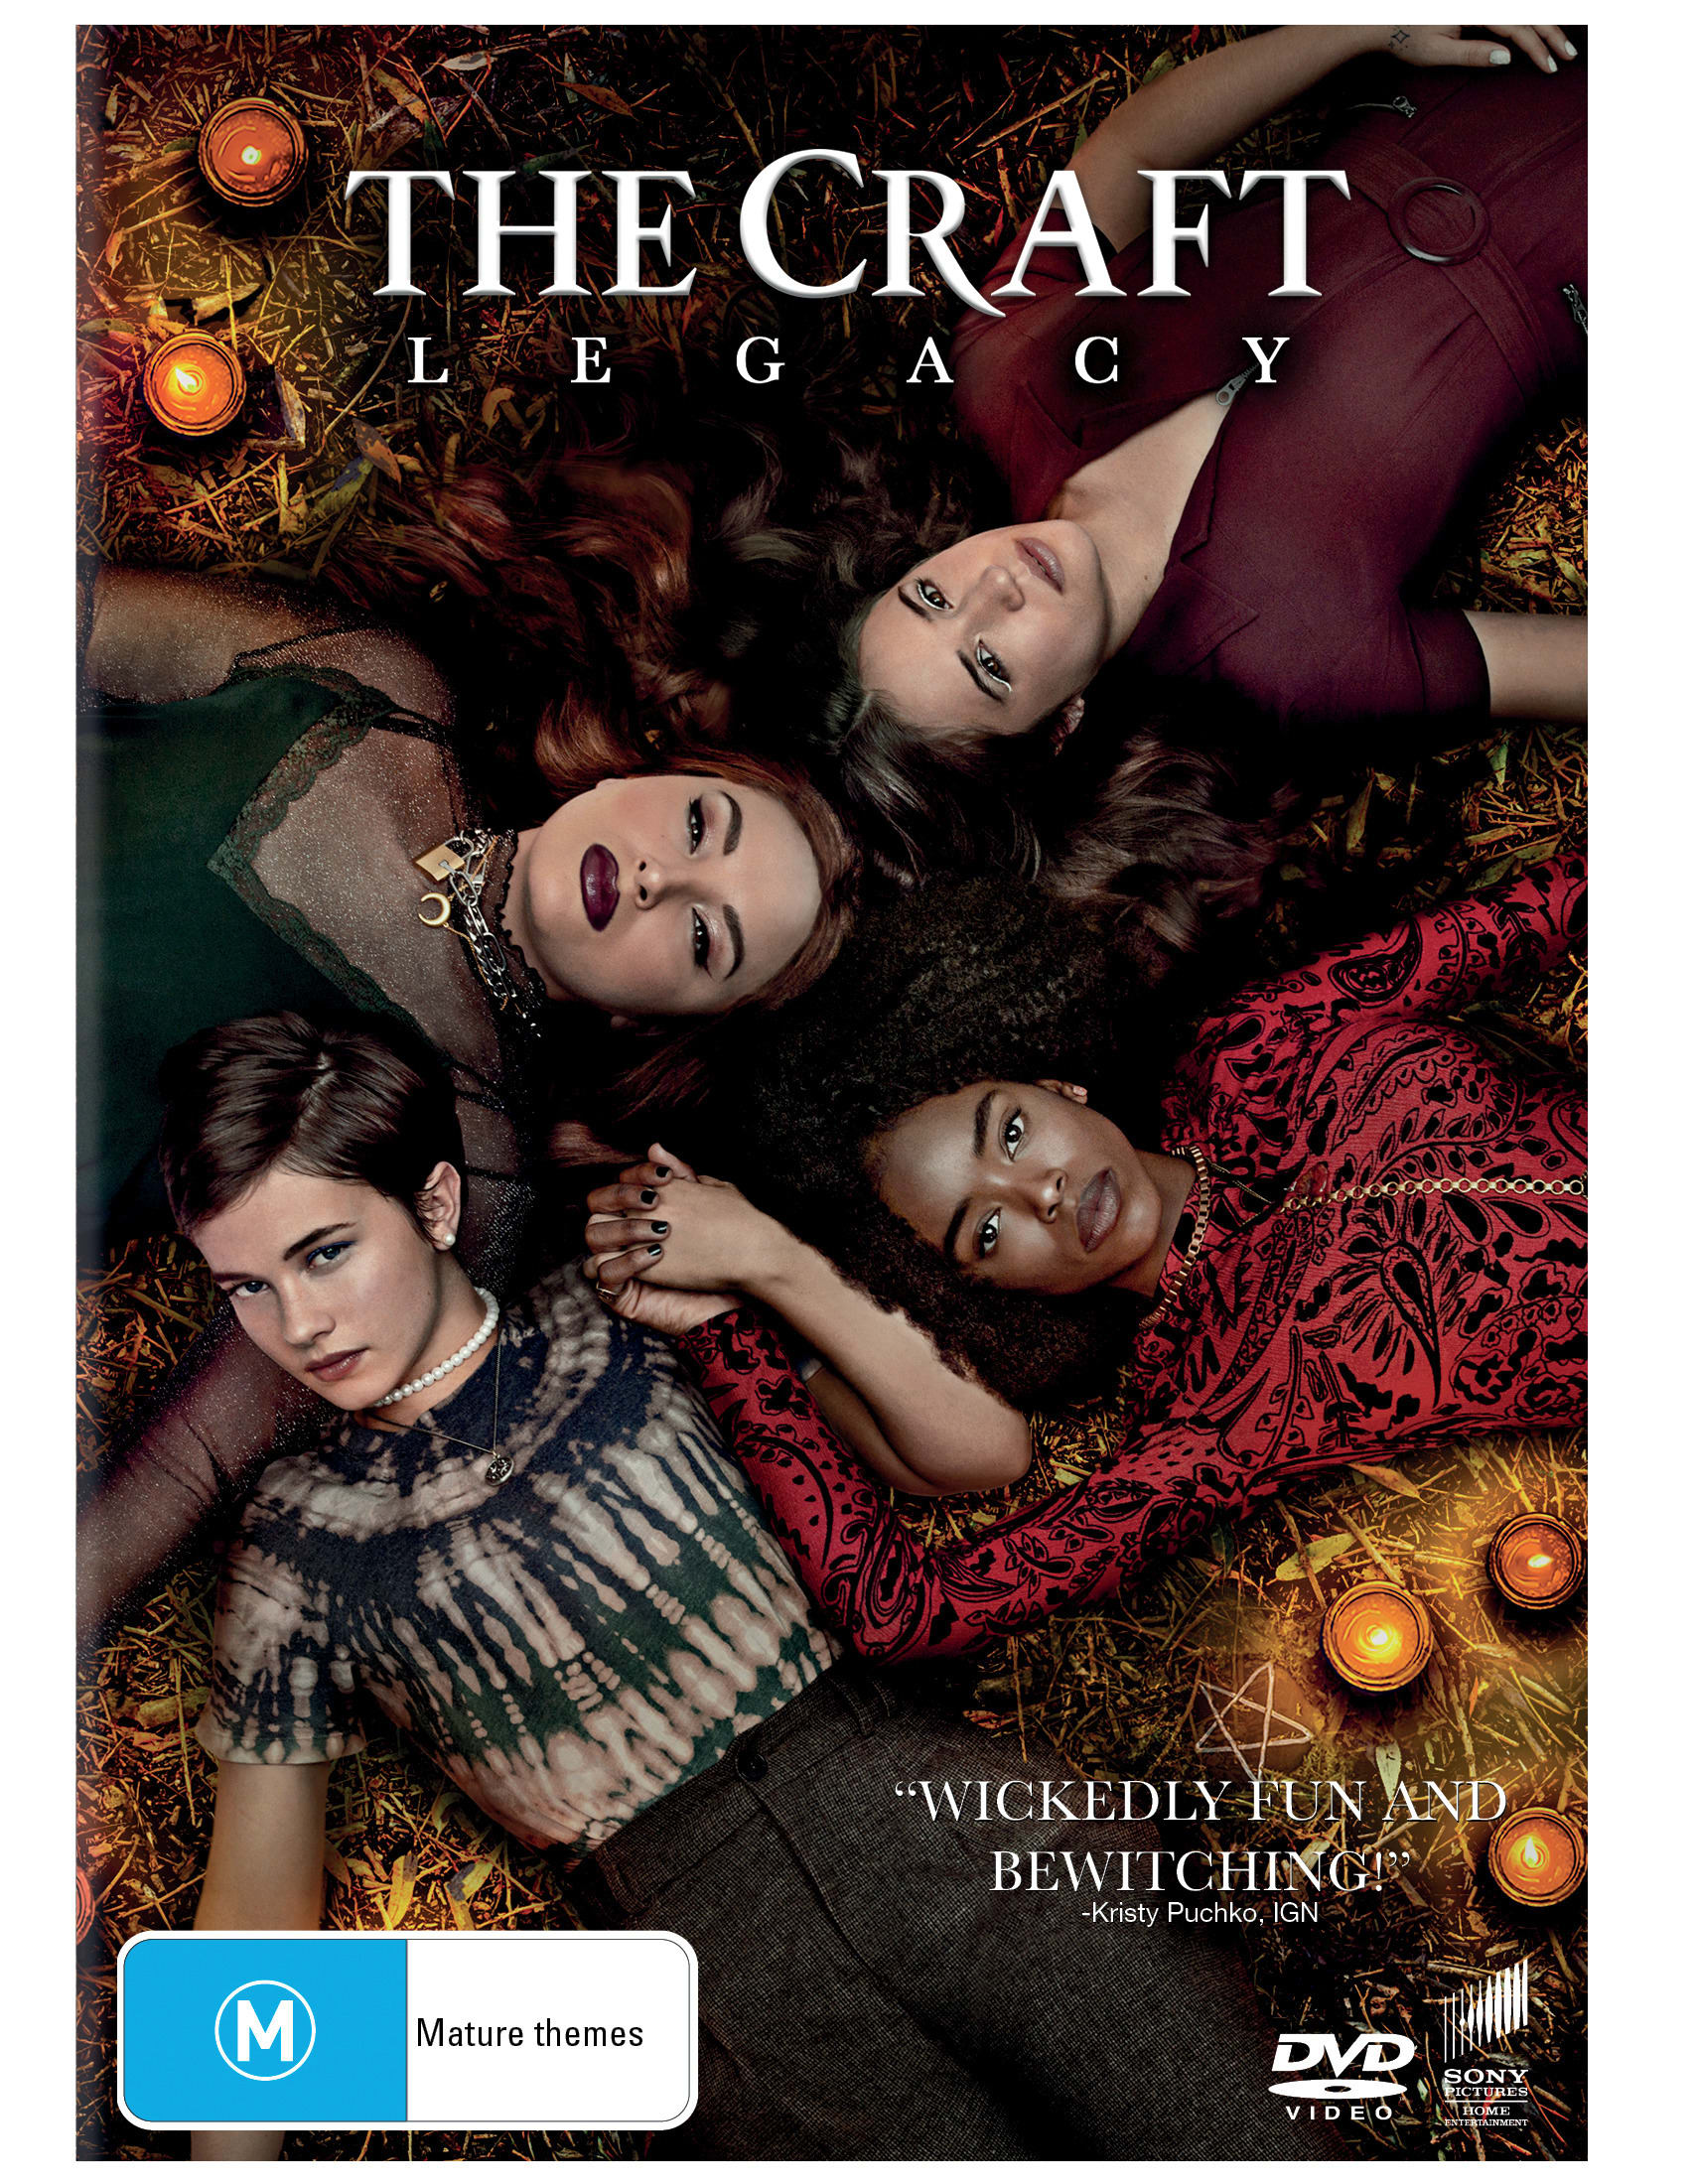 The craft - Legacy [DVD]